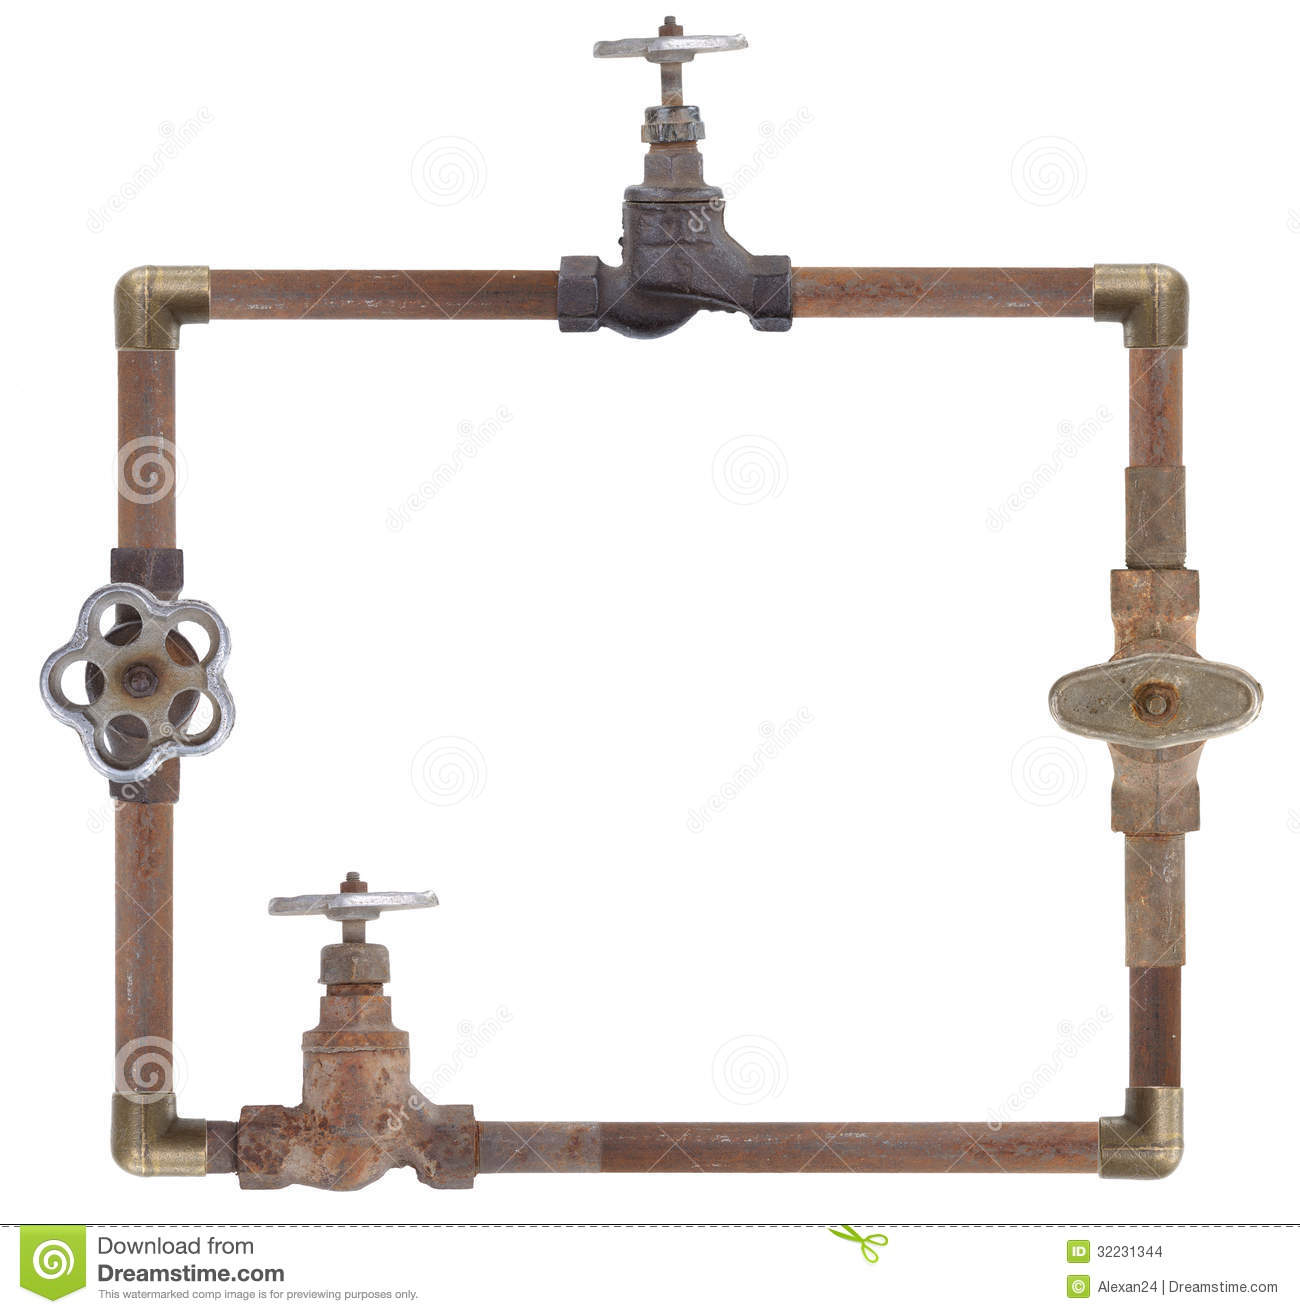 Frame from water pipes stock photo. Image of plumbing